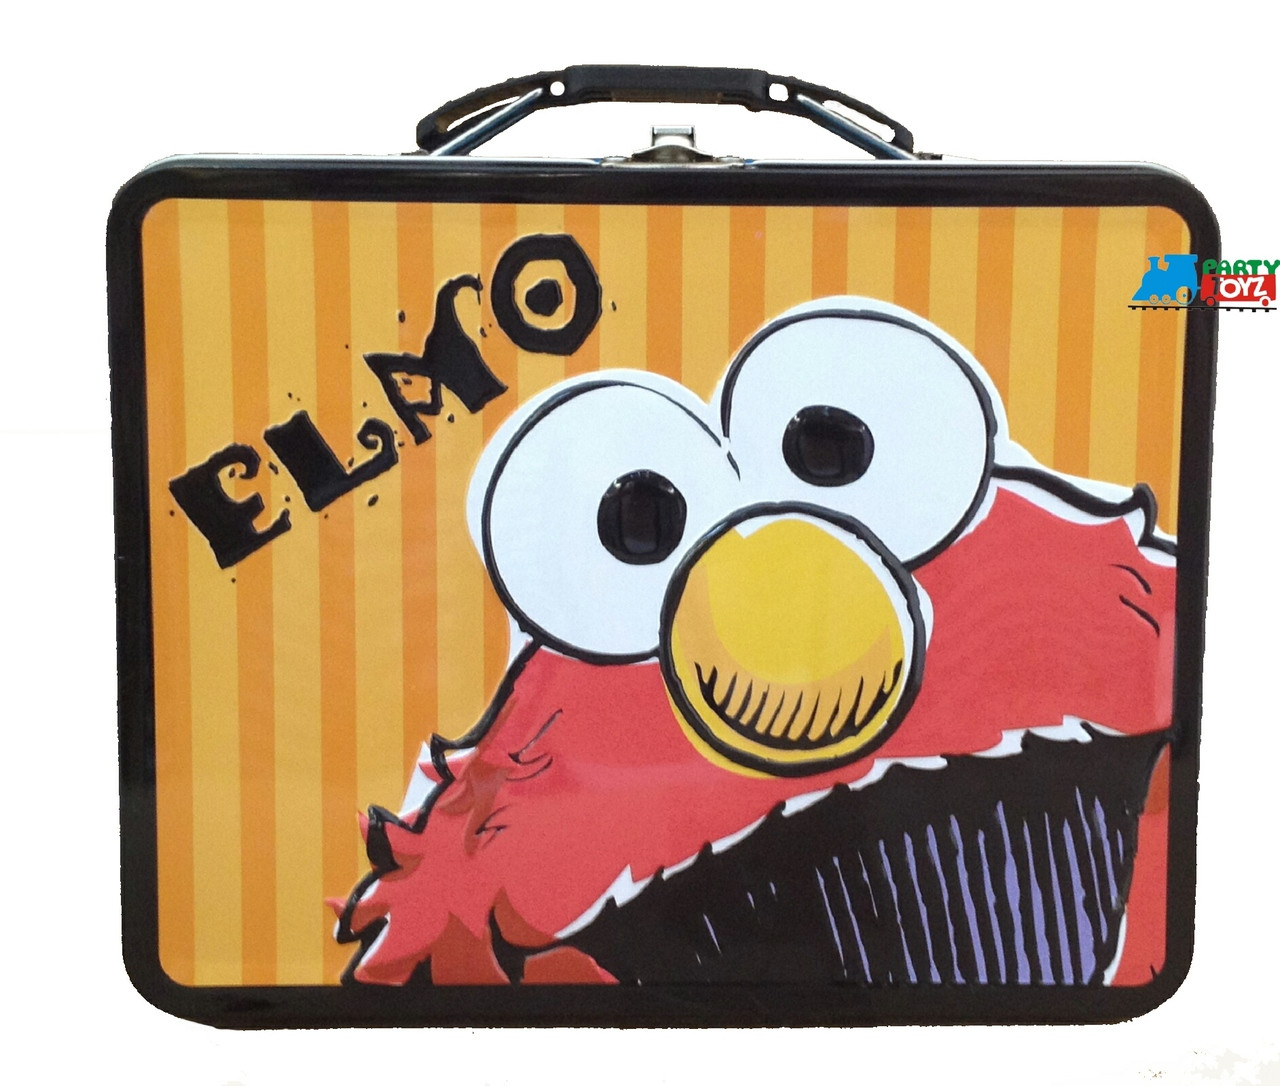 Elmo Big Bird Cookie Monster Oscar Grover Square Tin  Small Lunch Box  -  Face